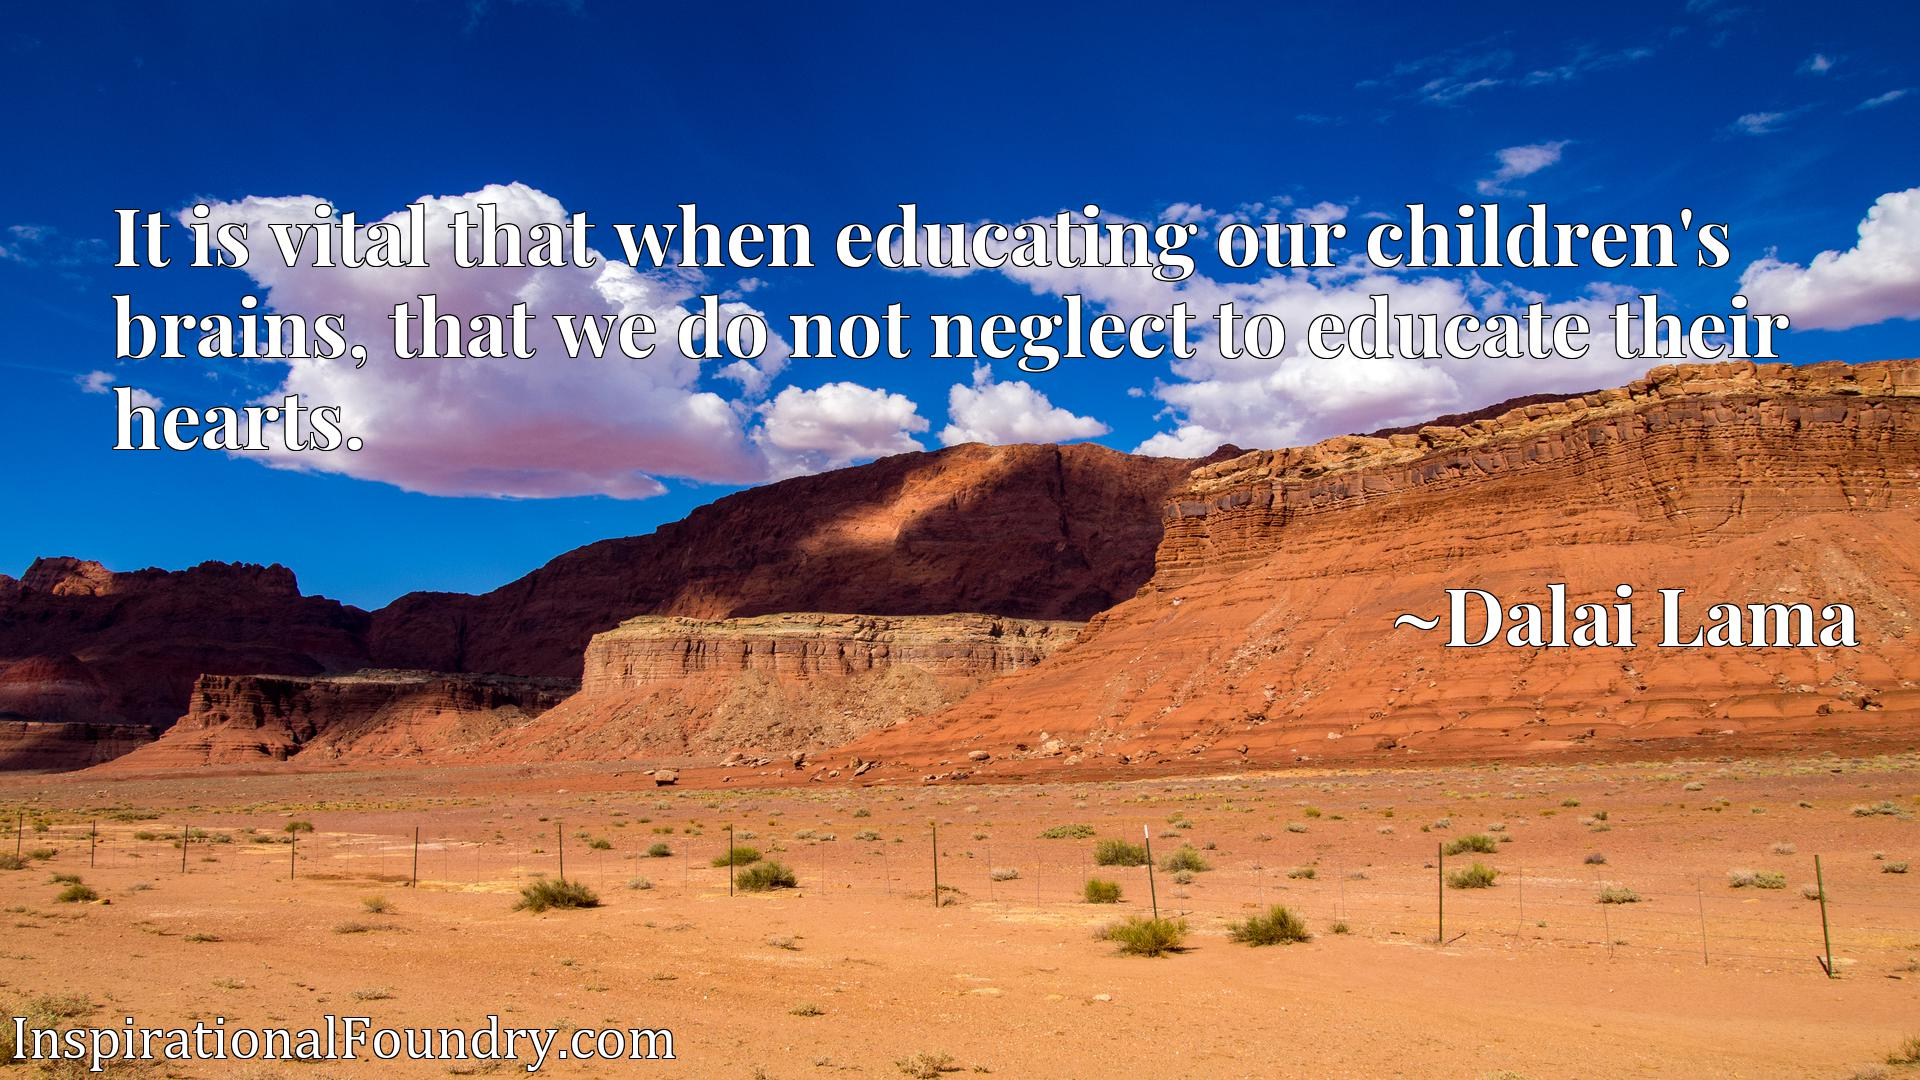 Quote Picture :It is vital that when educating our children's brains, that we do not neglect to educate their hearts.